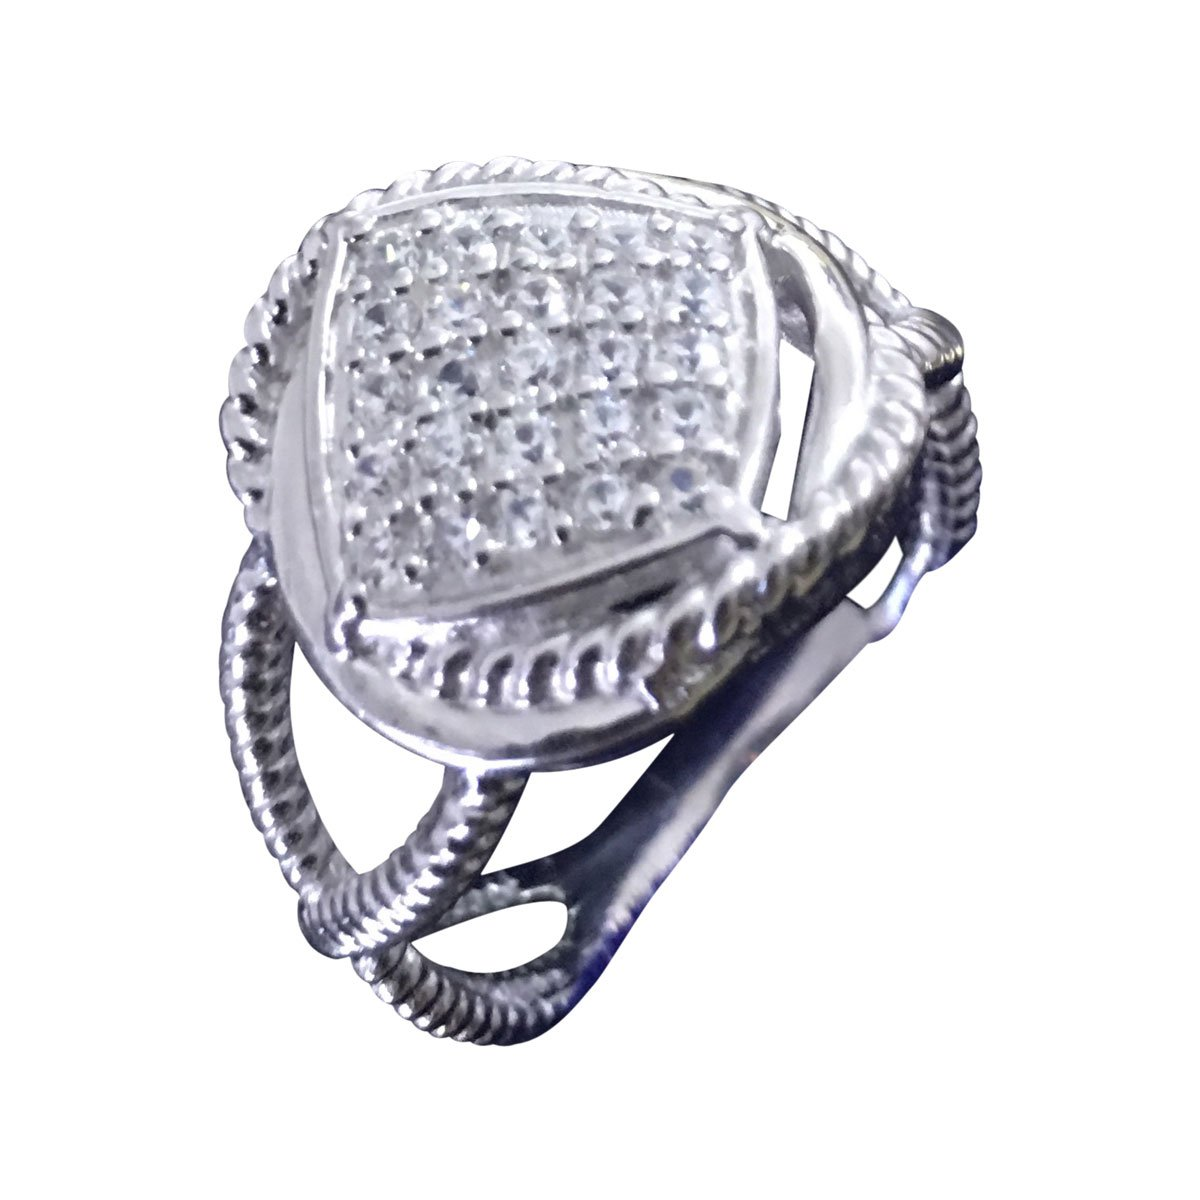 GEMPARA 14k White Gold Plated Designer Inspired Cable Twisted Ring